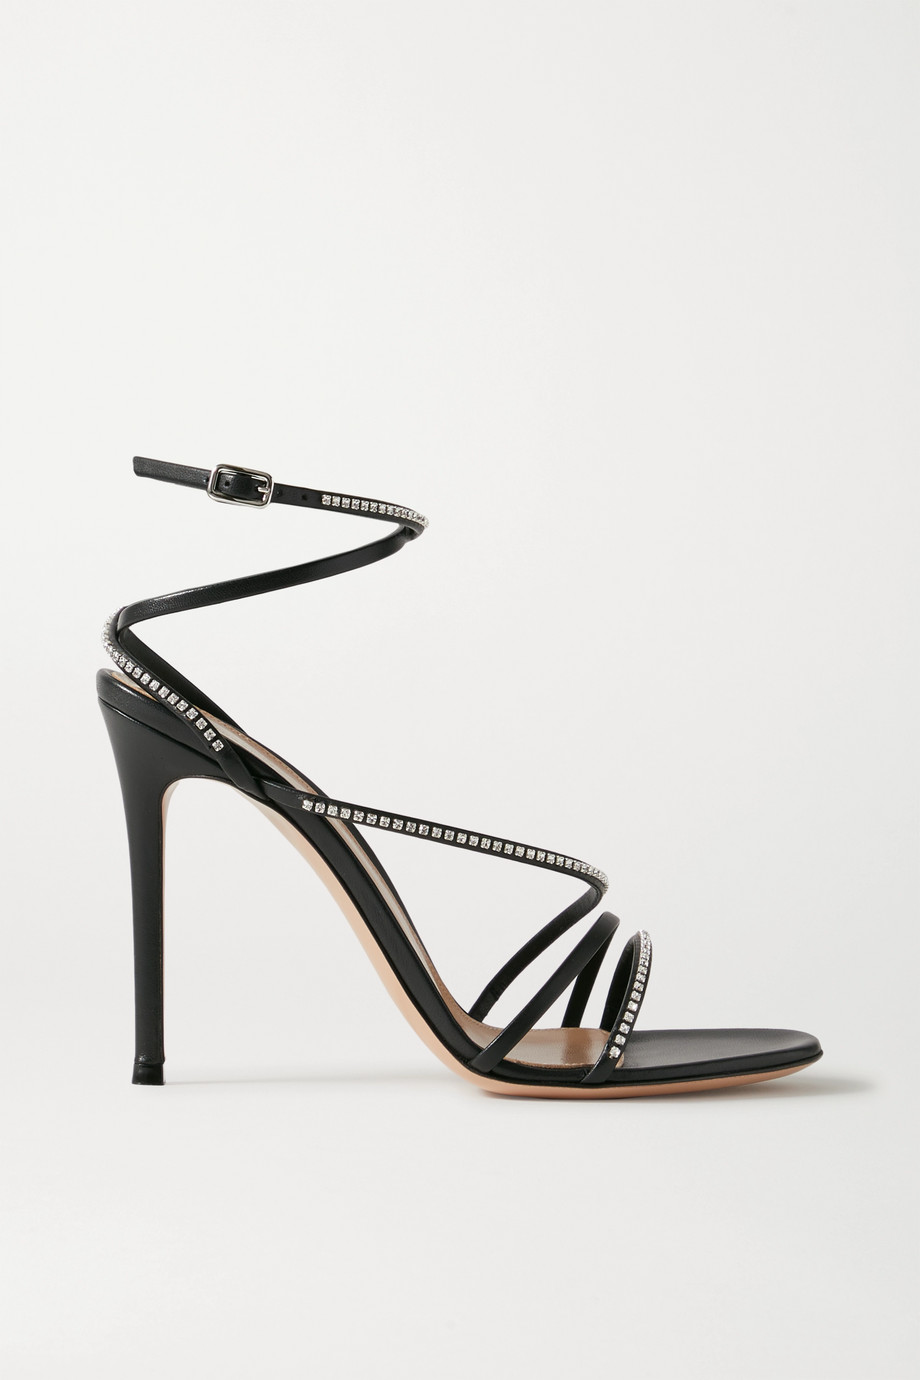 Gianvito Rossi 105 crystal-embellished leather sandals